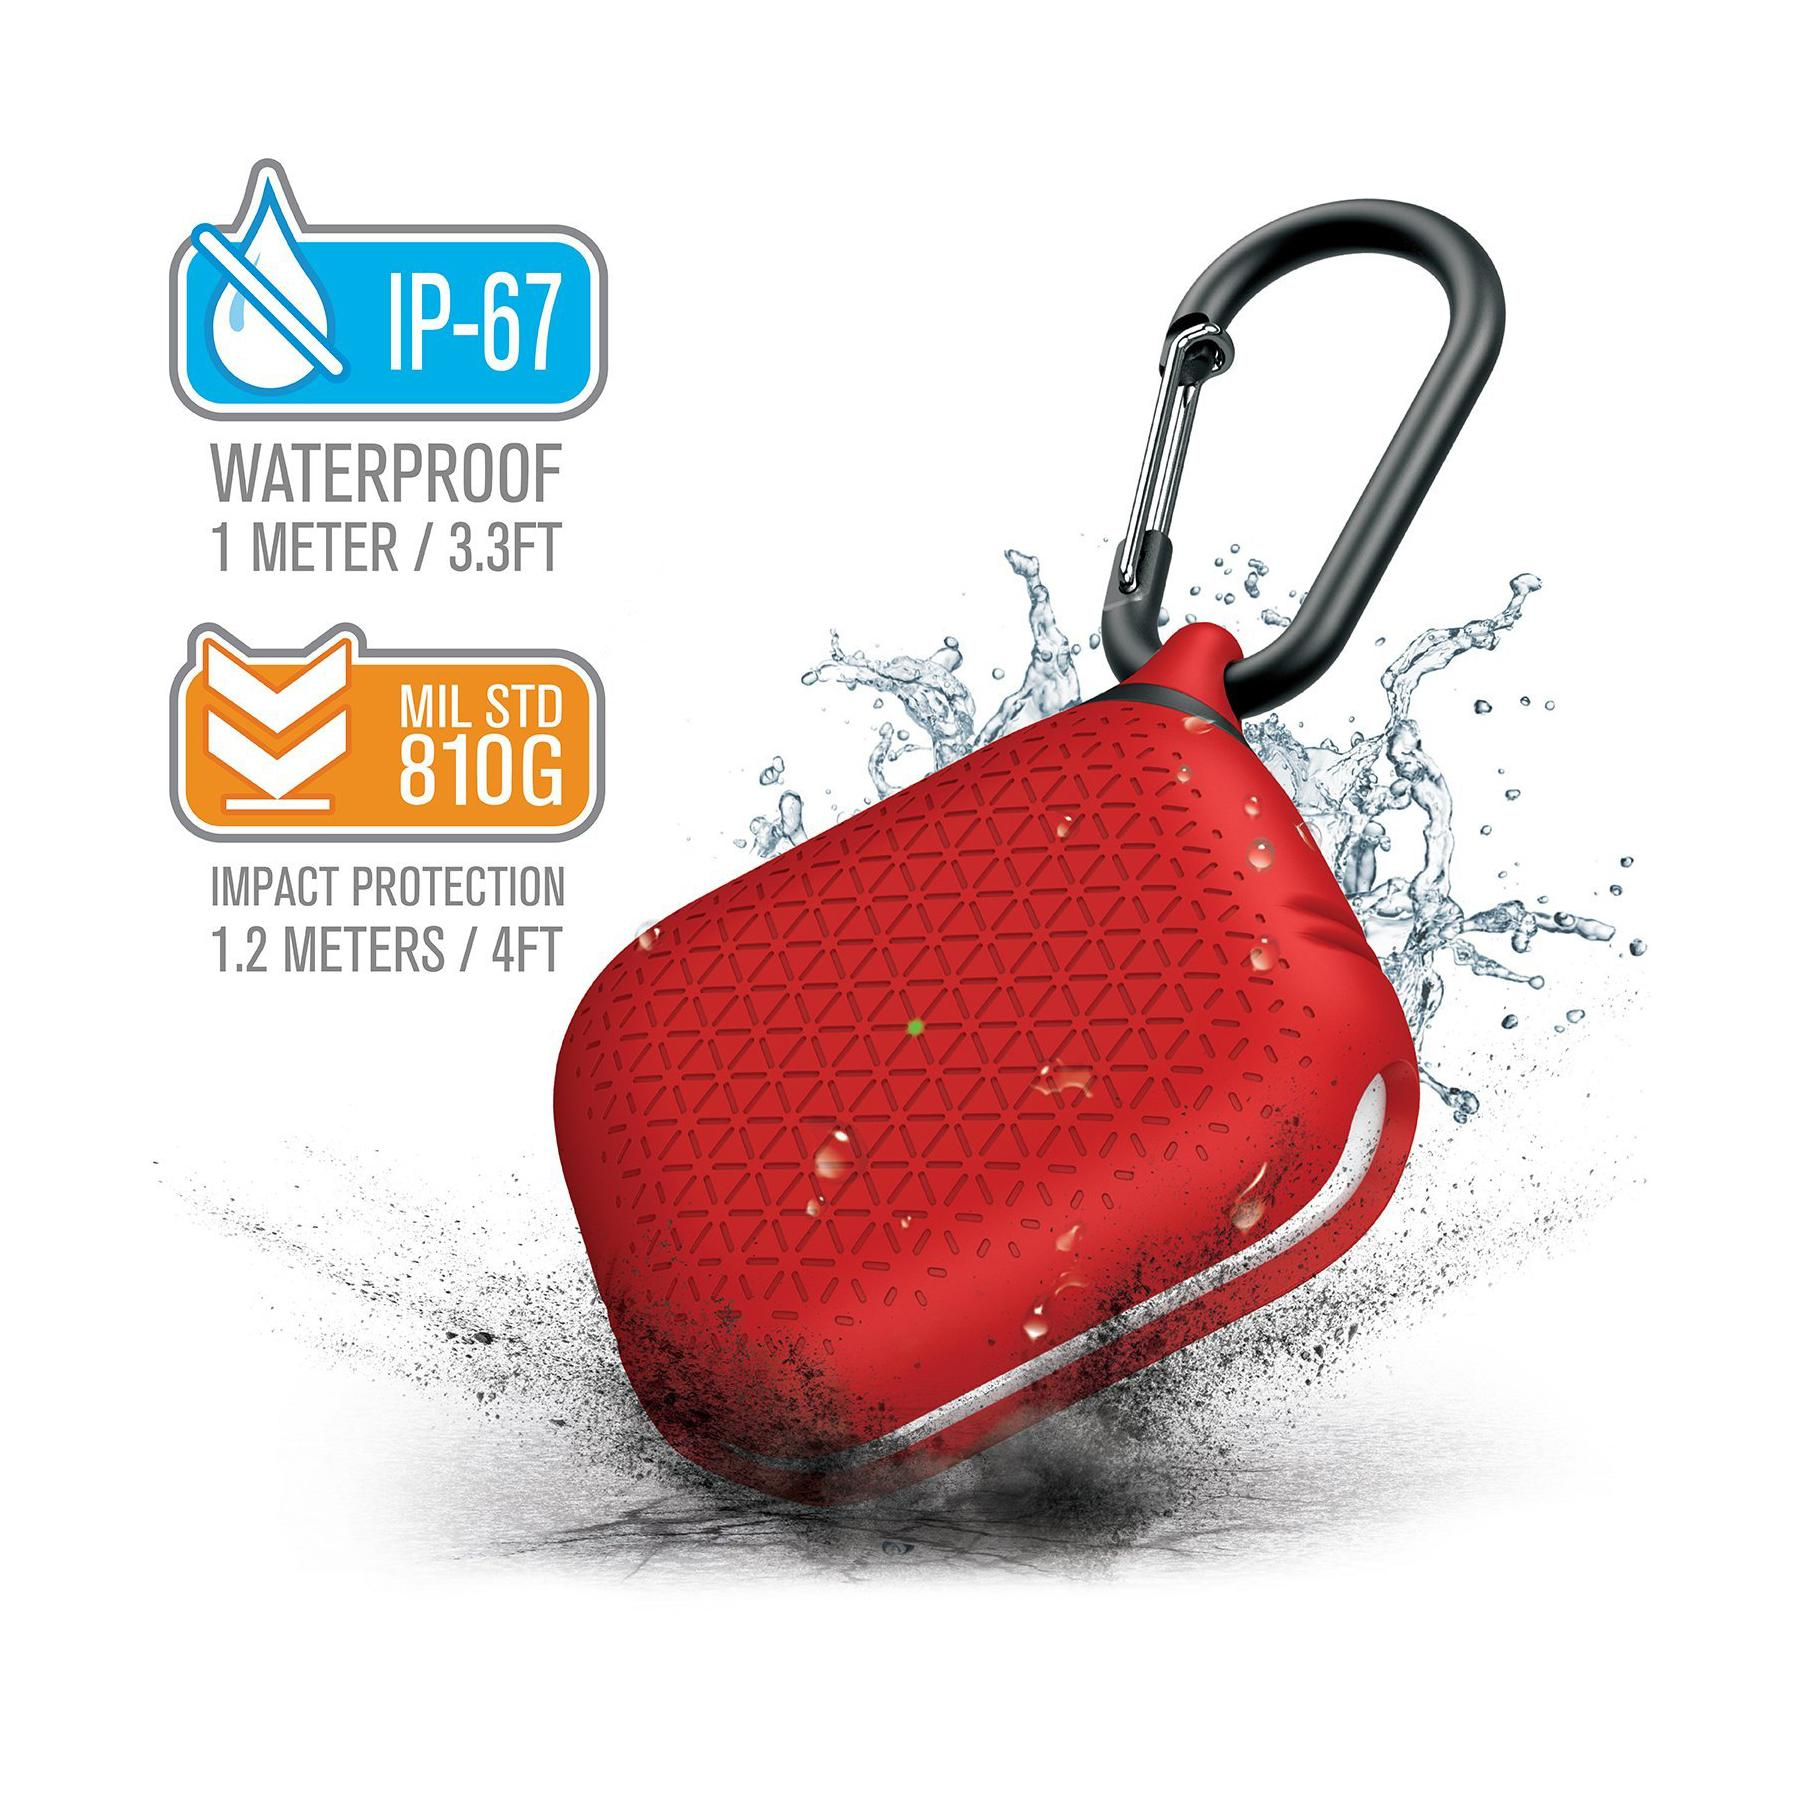 Catalyst Waterproof Premium Edition Apple AirPods Pro Case - Flame Red